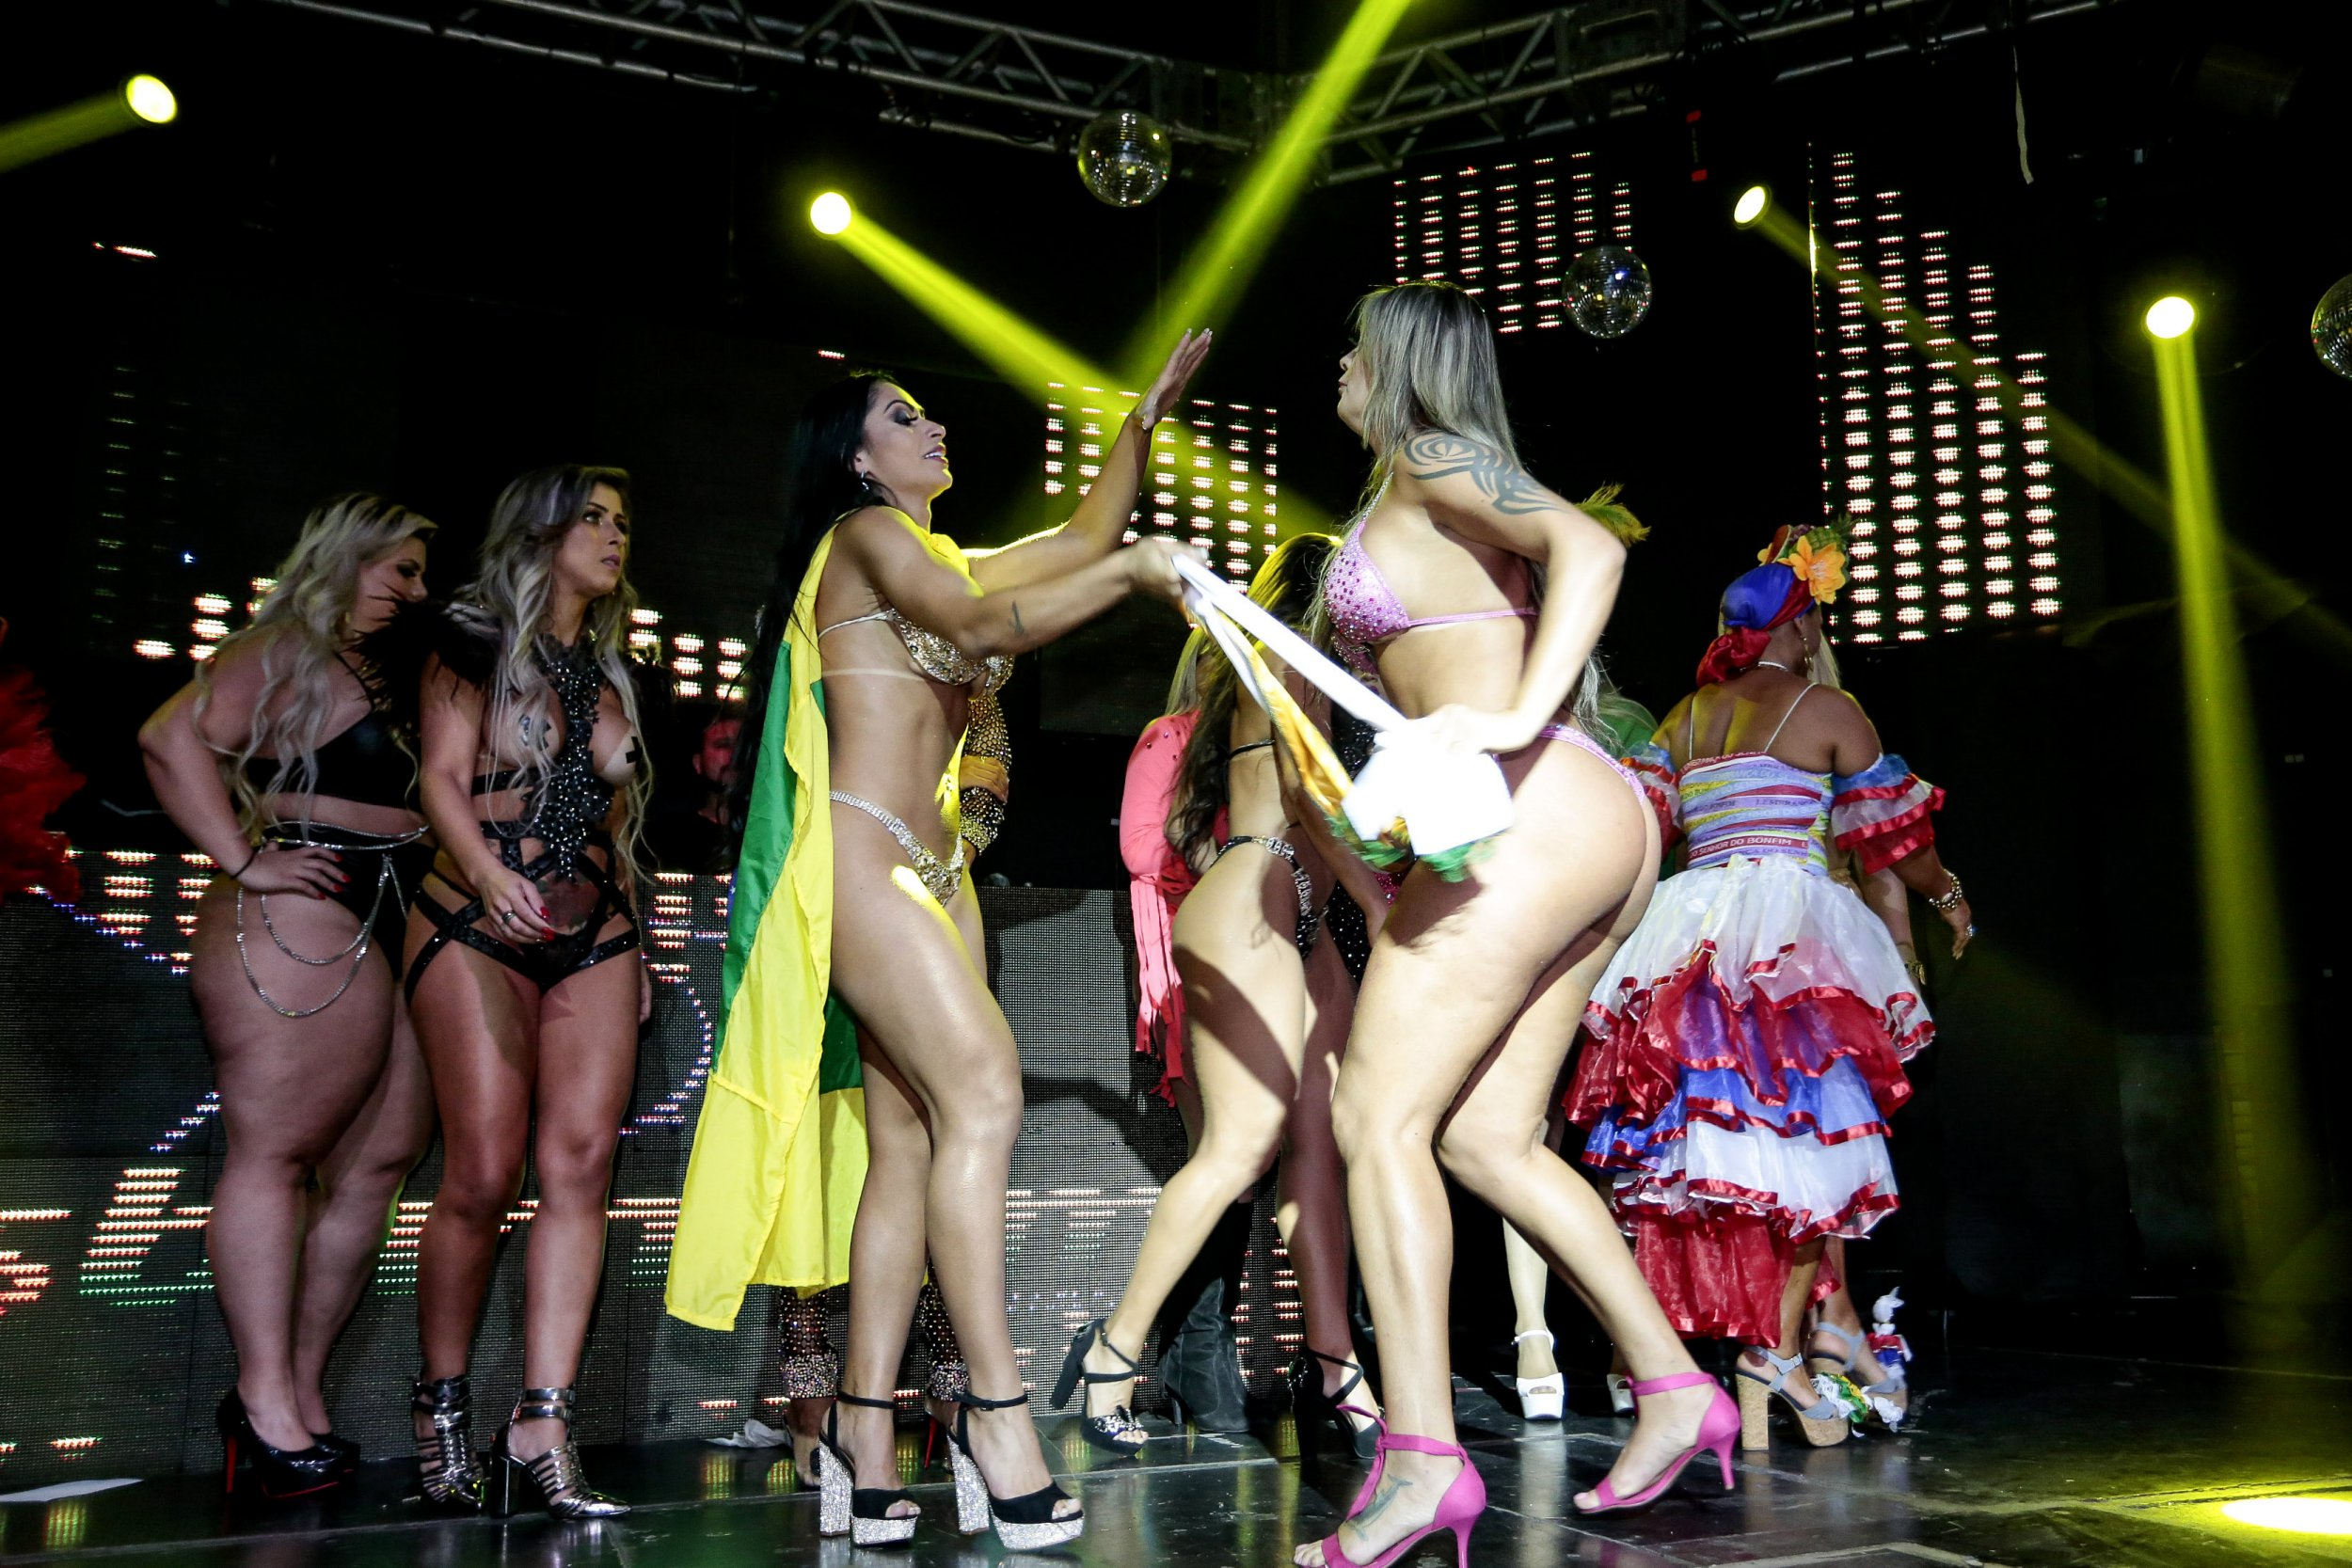 Miss Bumbum finalist tussles with winner after accusing her of having fake bum